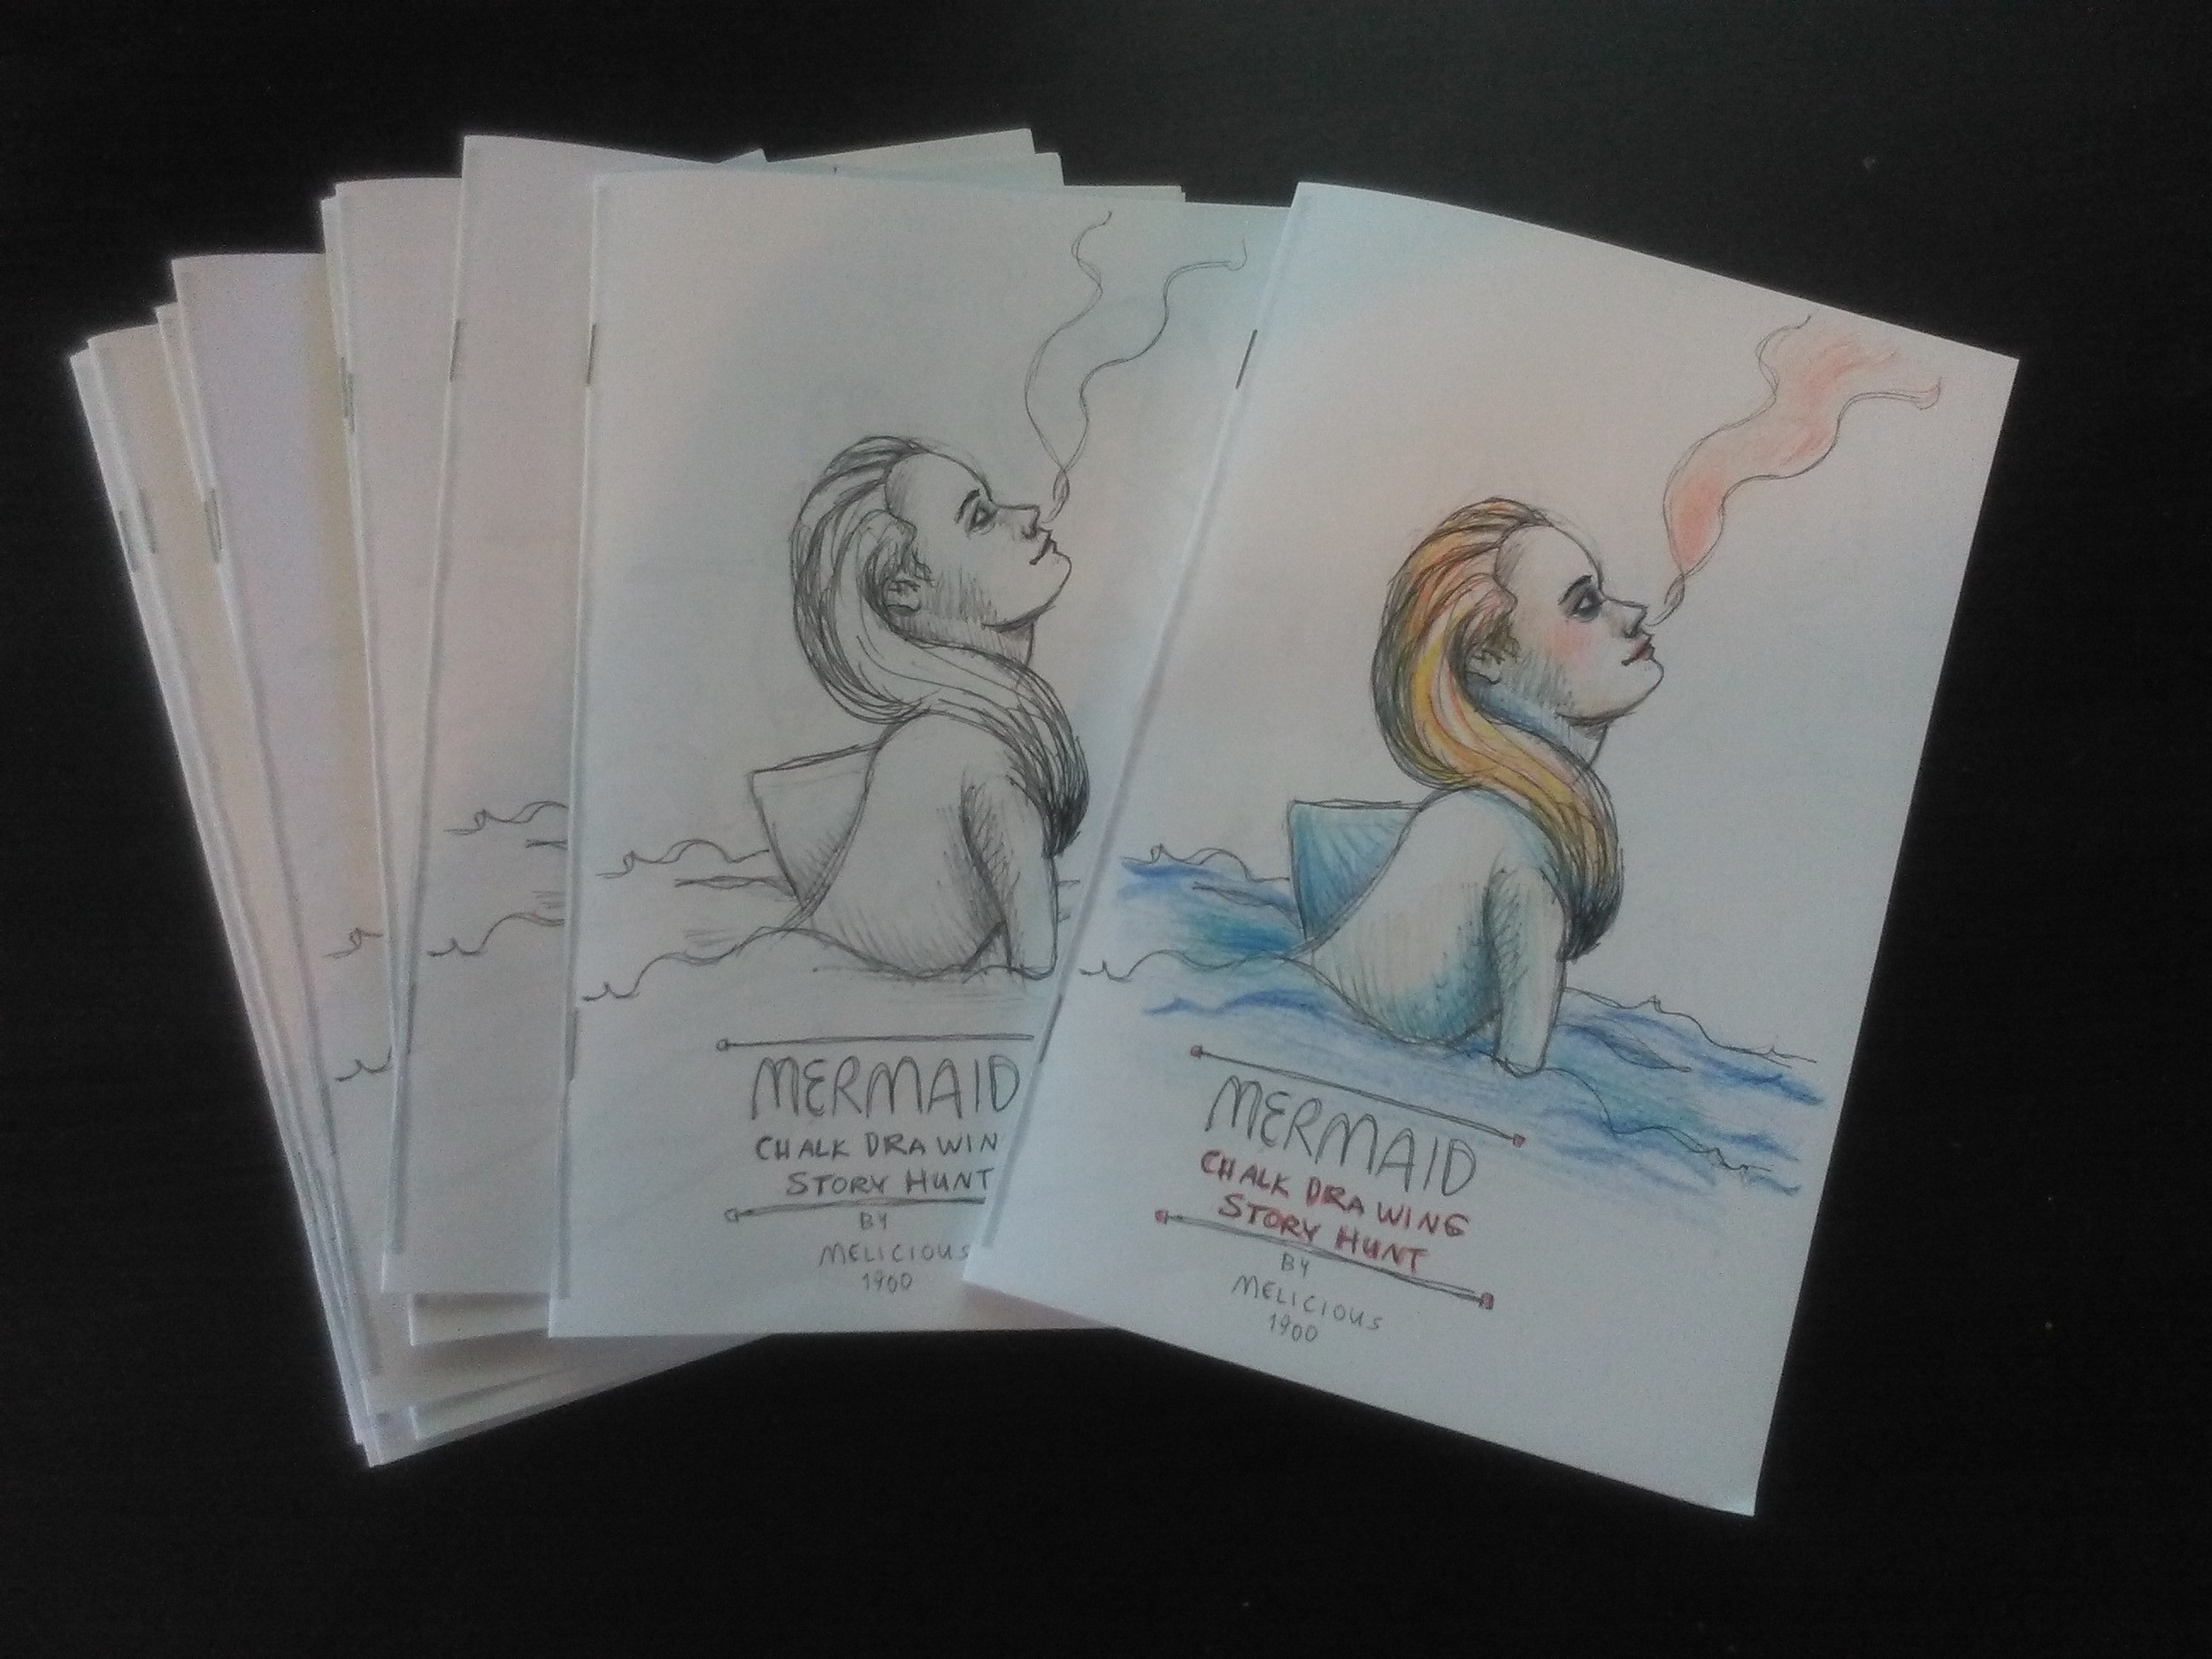 The sketchbooks that show the preparatory drawings for the Chalk Drawing Story Hunt. There are a few left and you can get one sent to you by emailing me with your name and mailing address (melicious1900(at)gmail(dot)com).